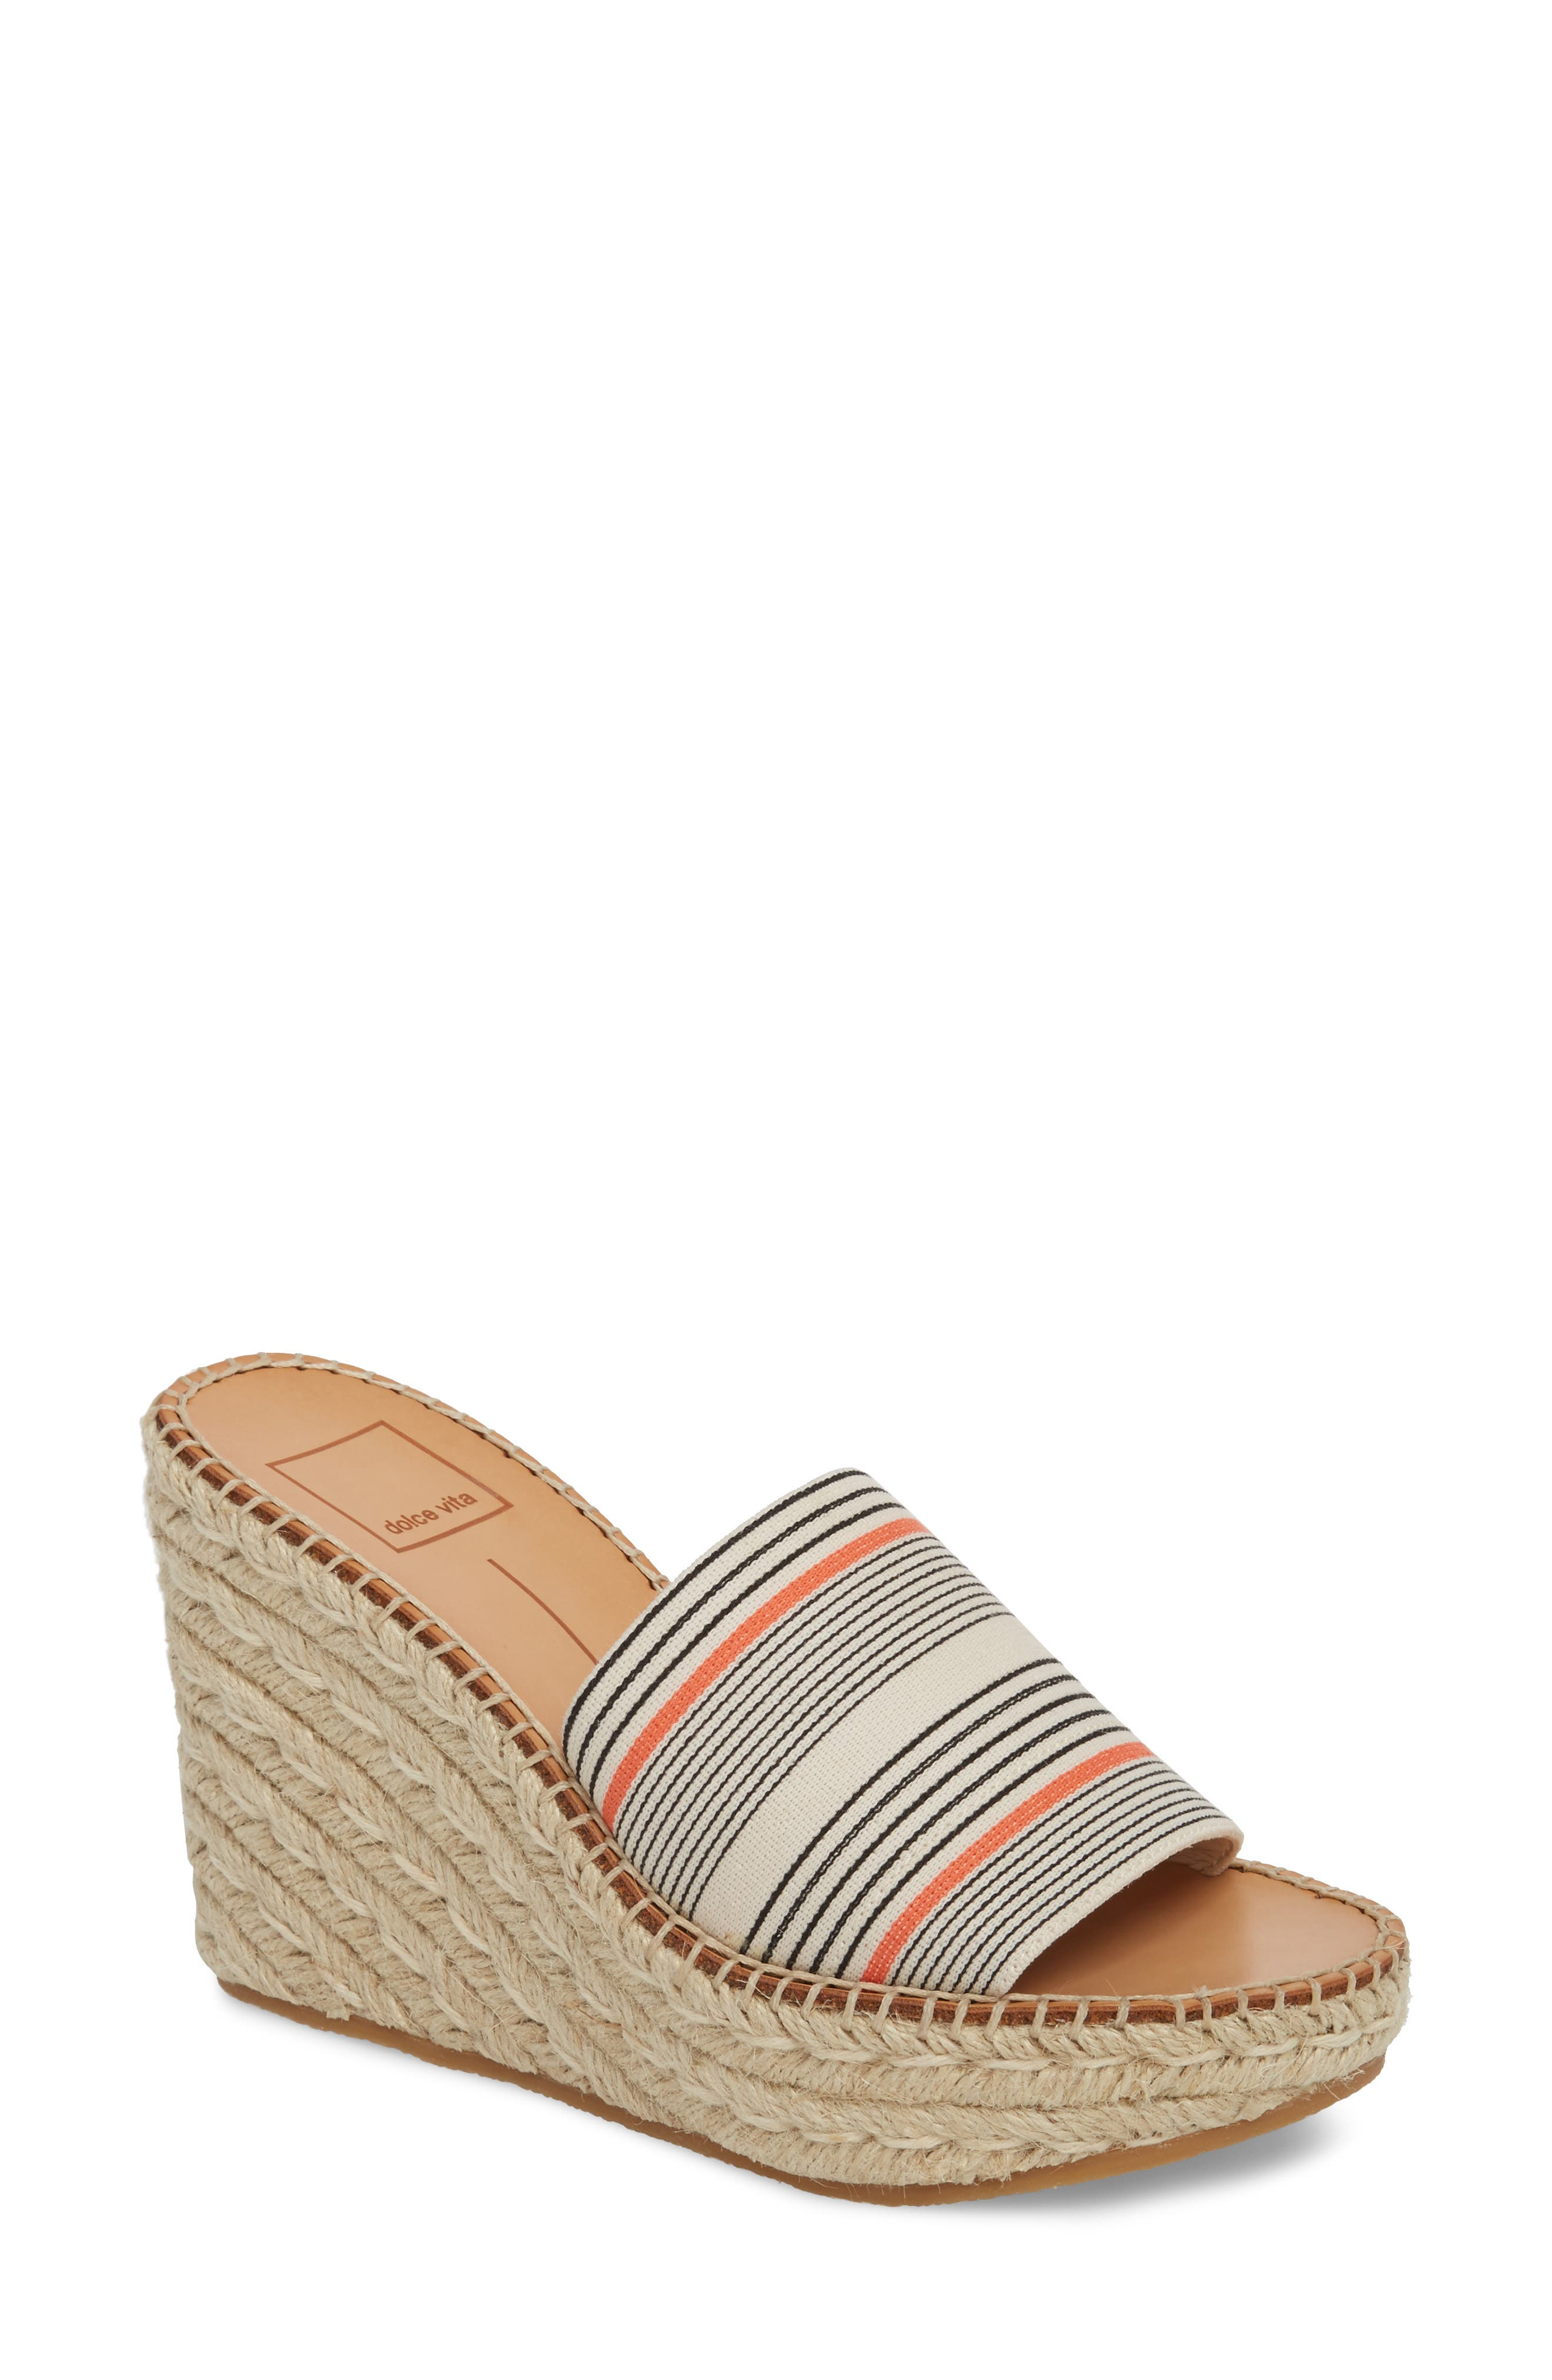 Dolce Vita Pim Platform Wedge Slide (Women)